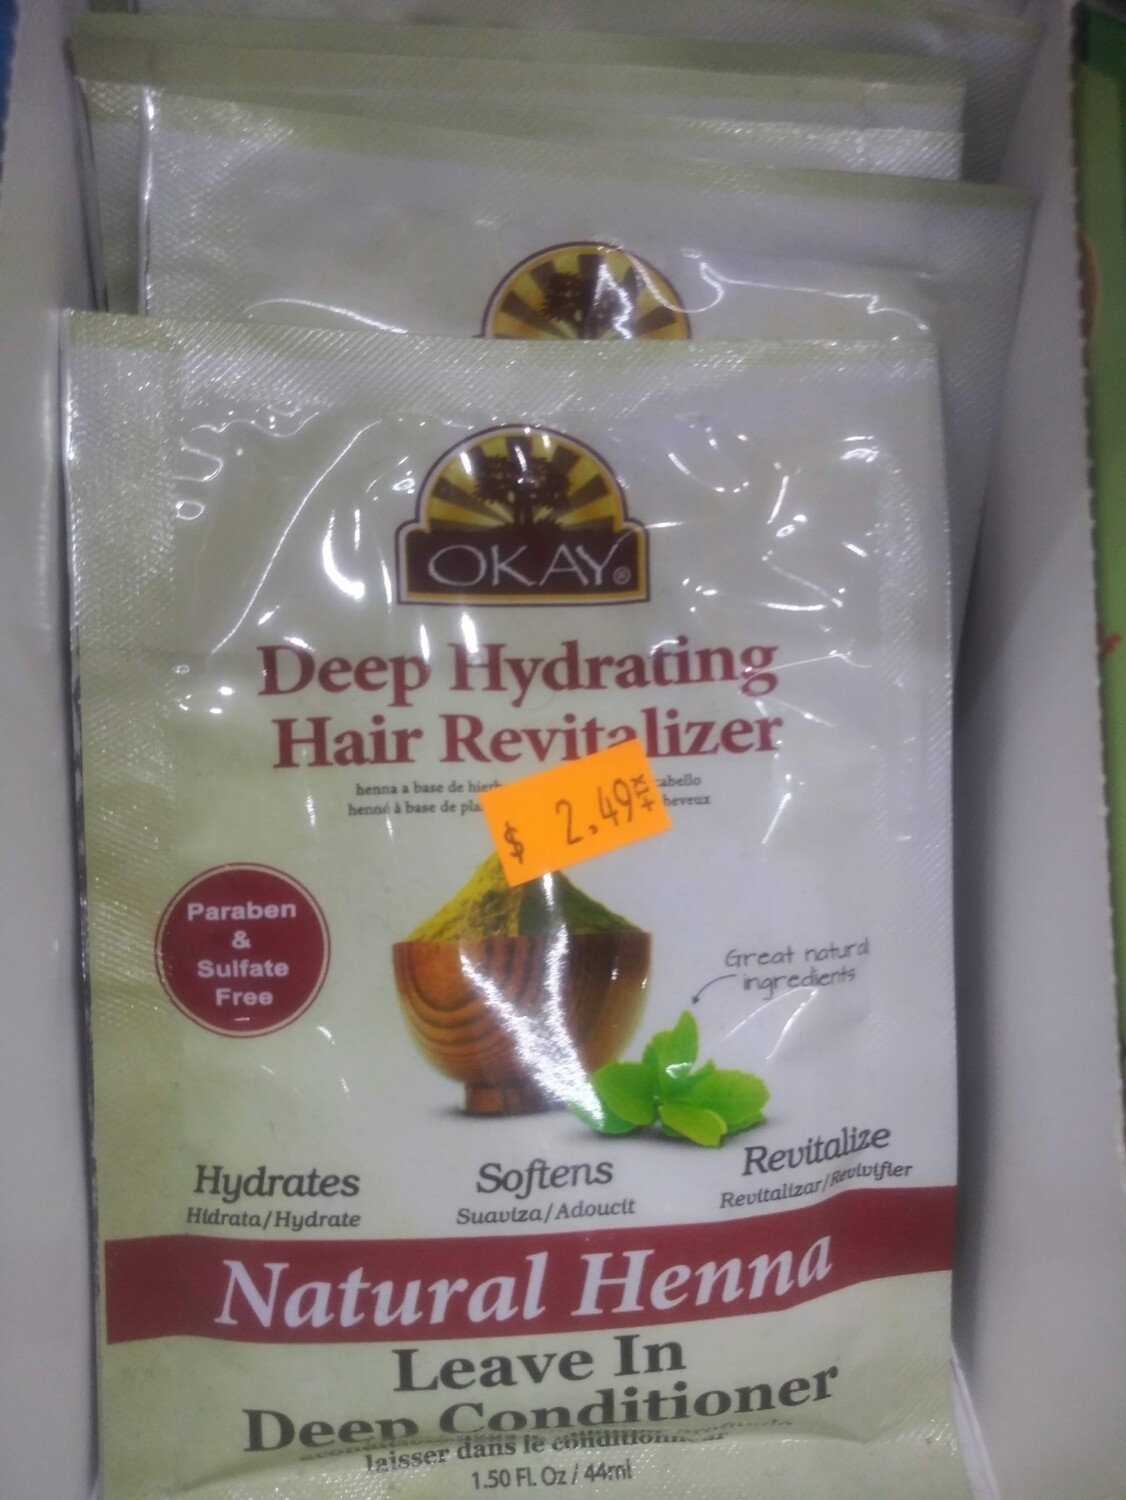 Okay Deep Hydrating Hair Revitalizer Leave In Conditioner